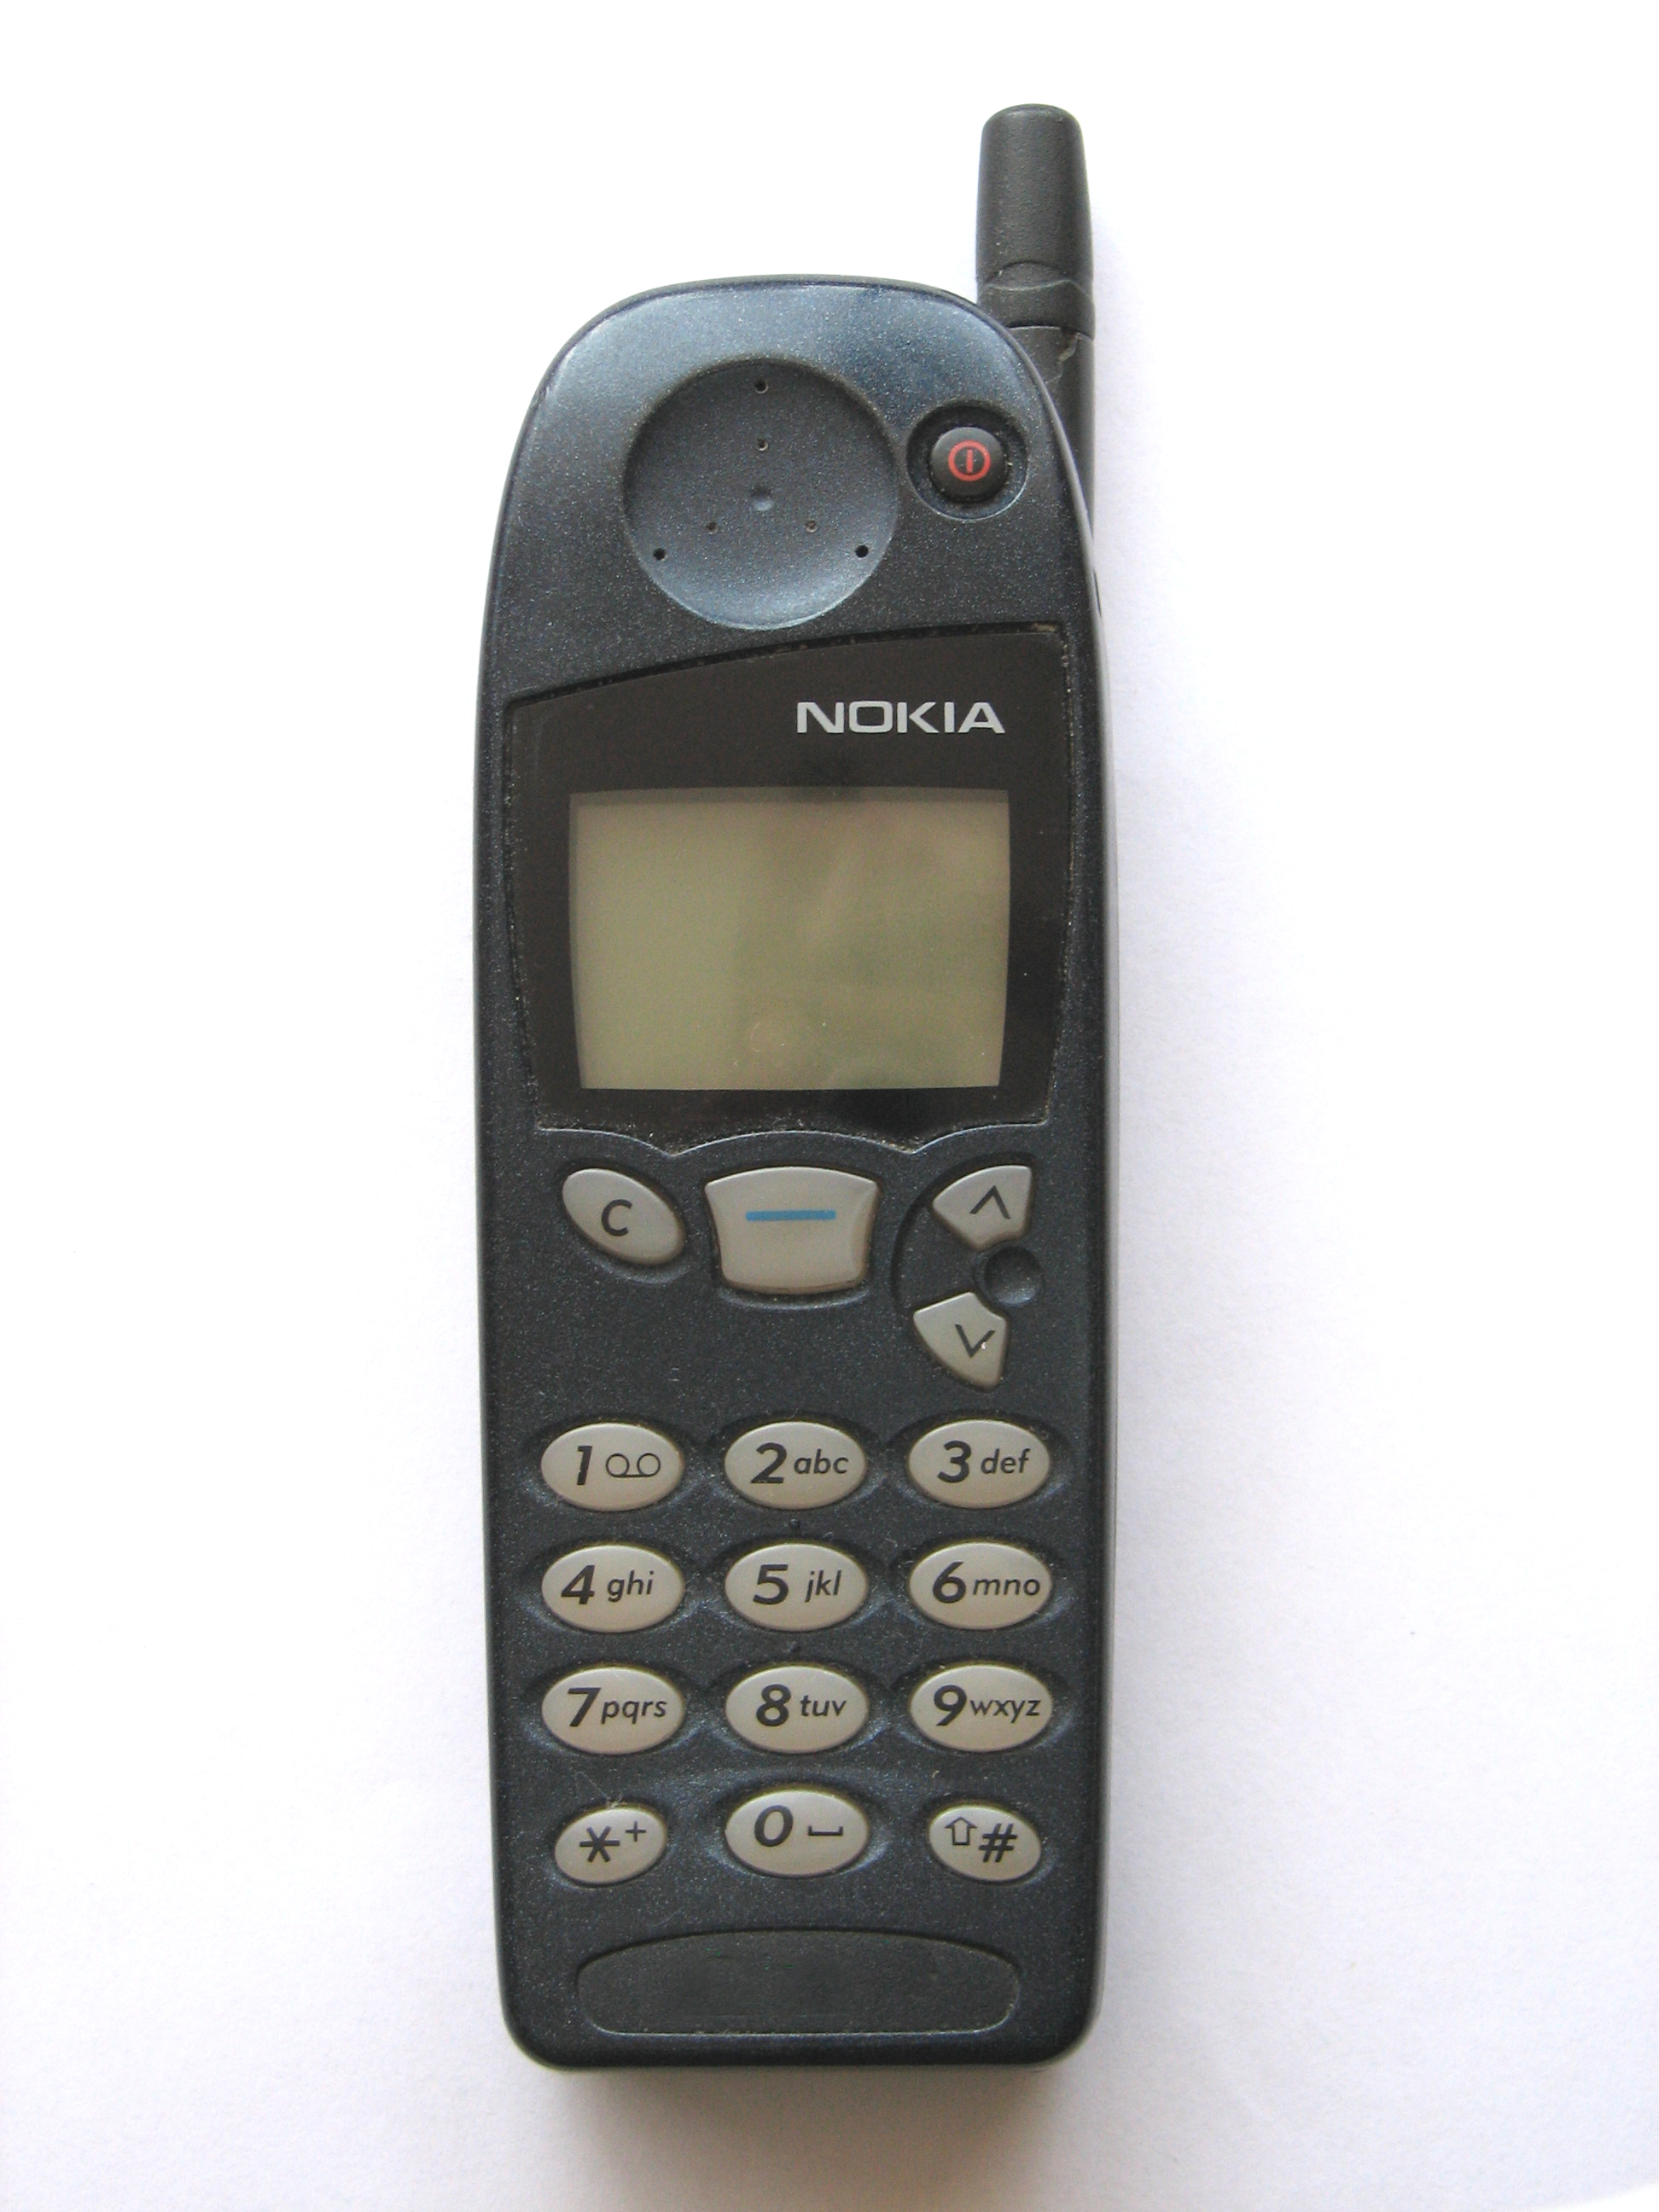 mobile phone and nokia Items 1 - 12 of 24 buy nokia mobile phone in ksa ( saudi arabia ) online at the best price compare the nokia mobile phone offers and shop online with free shipping in ksa ( saudi arabia.